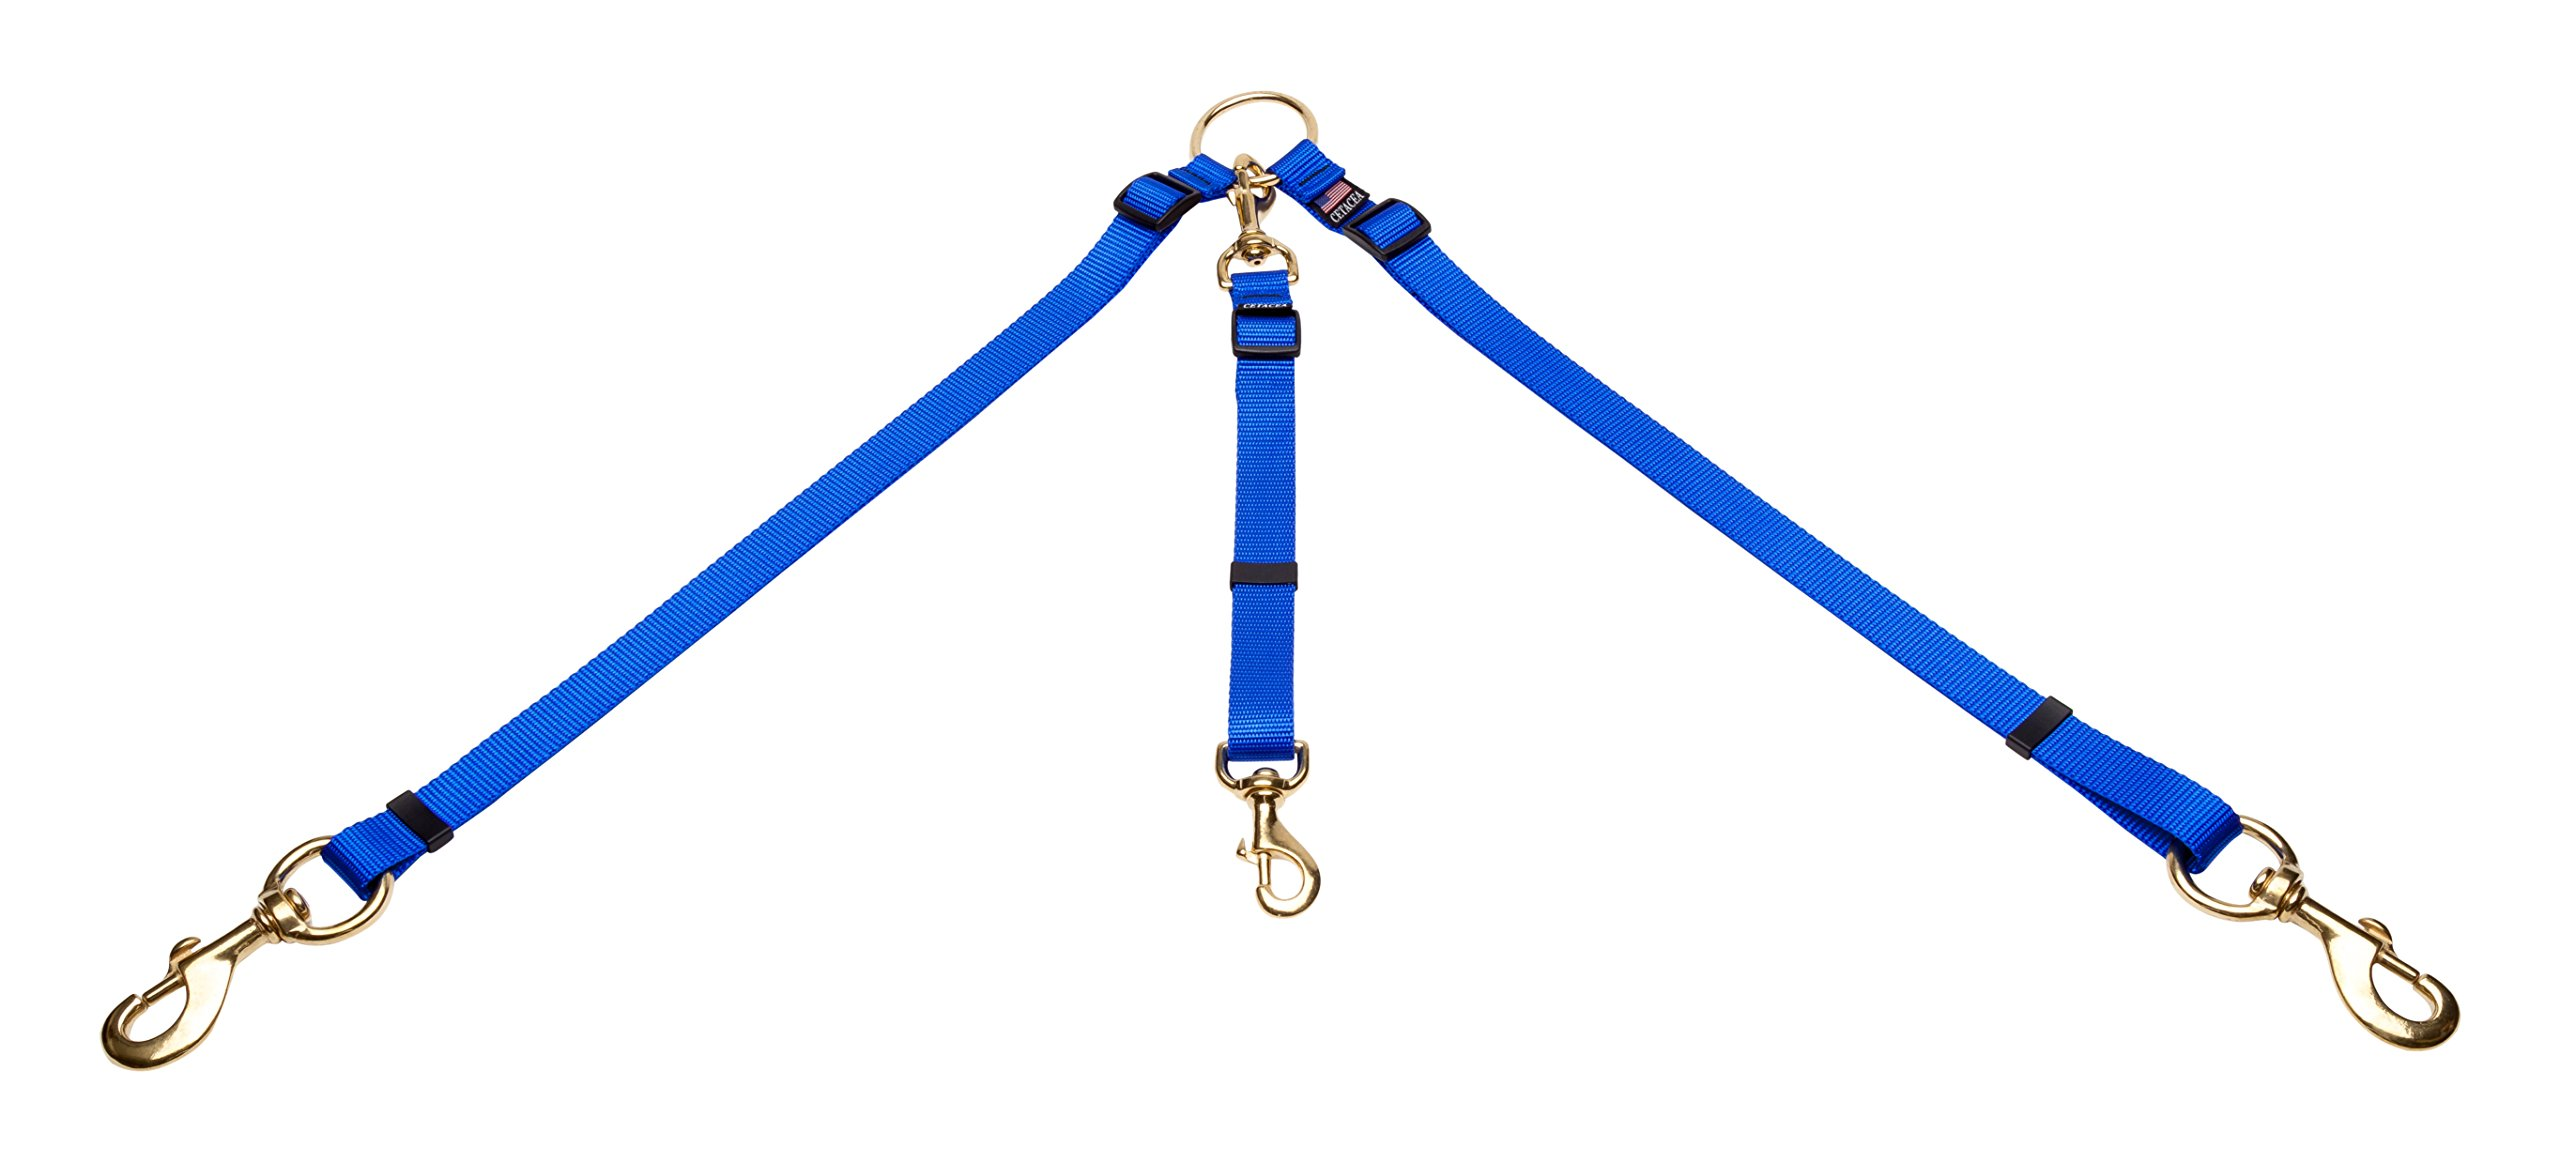 Cetacea Pet Truck Bed Tether, One Size, Blue